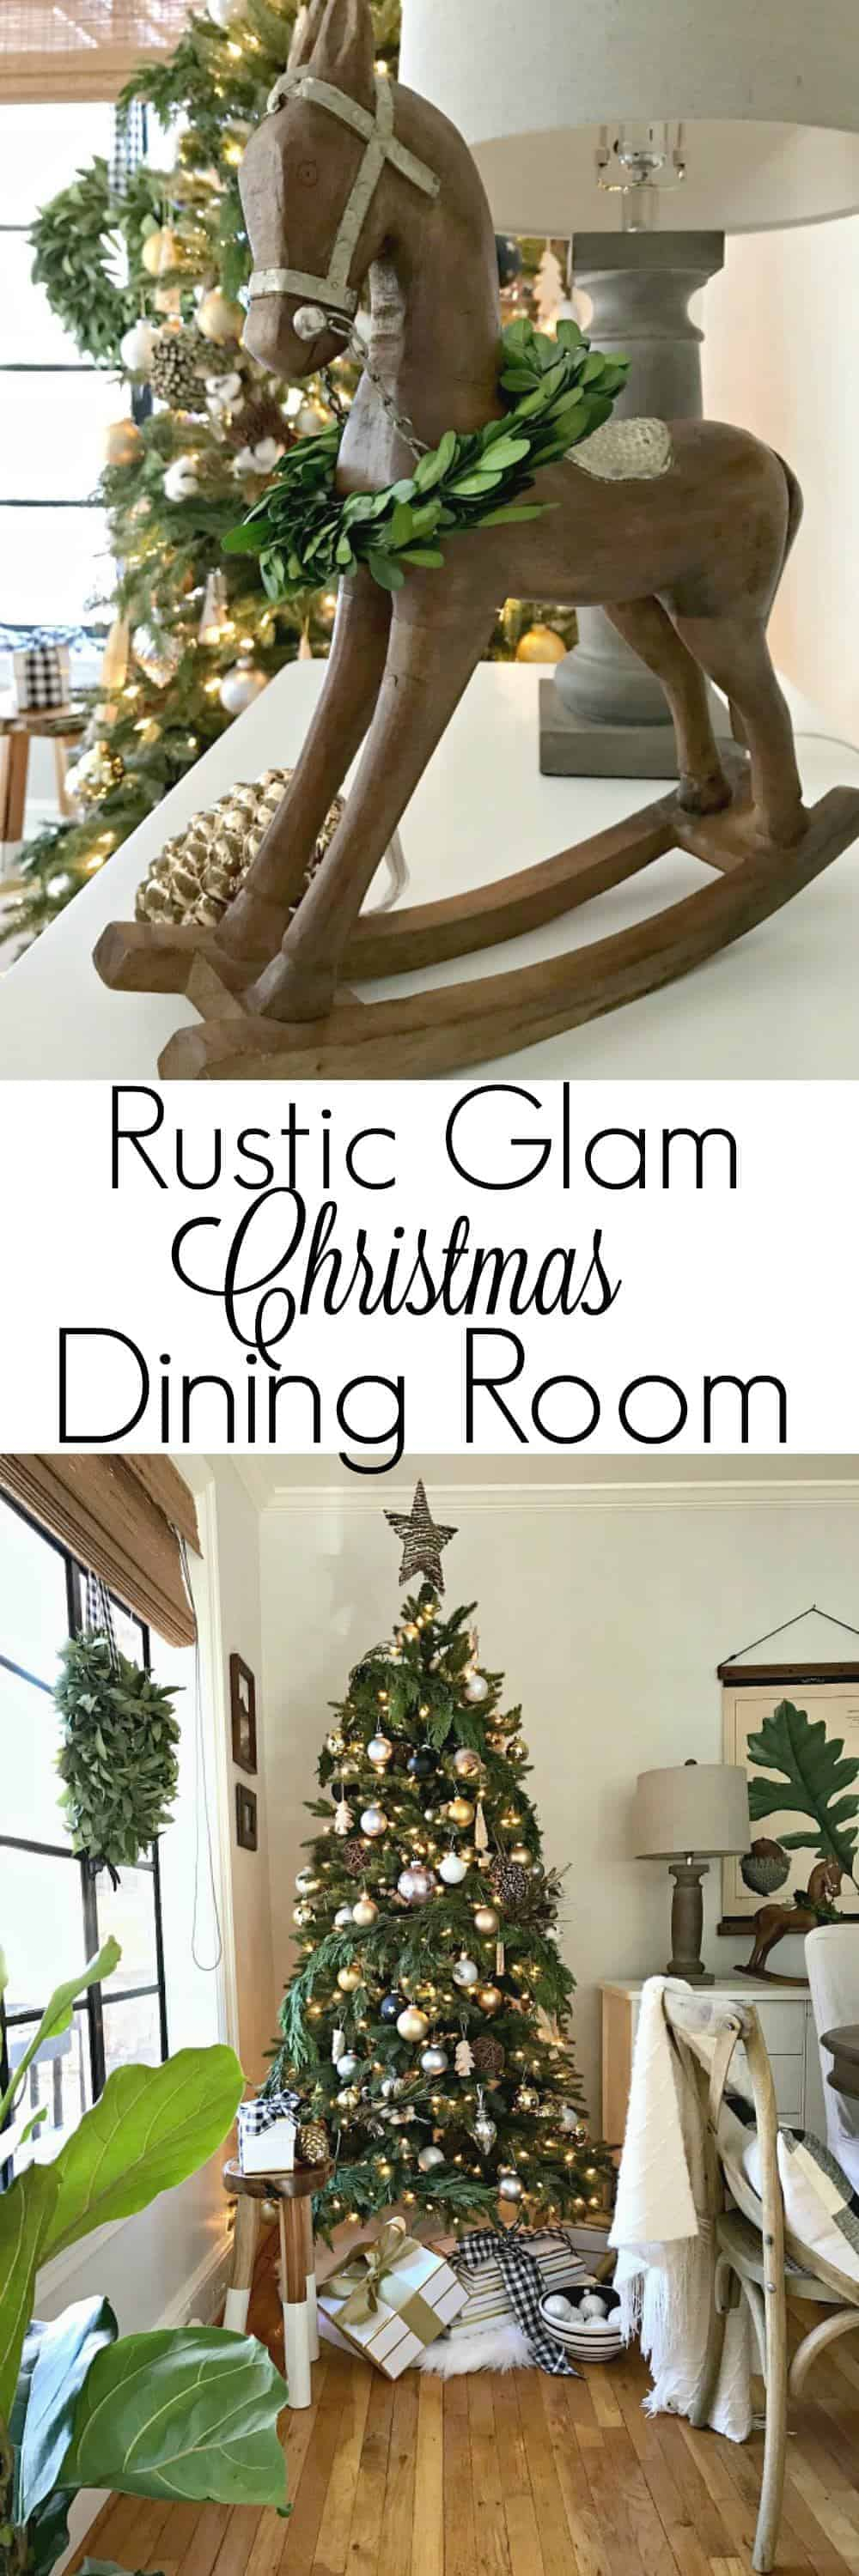 rustic glam Christmas tree and wood rocking horse in dining room